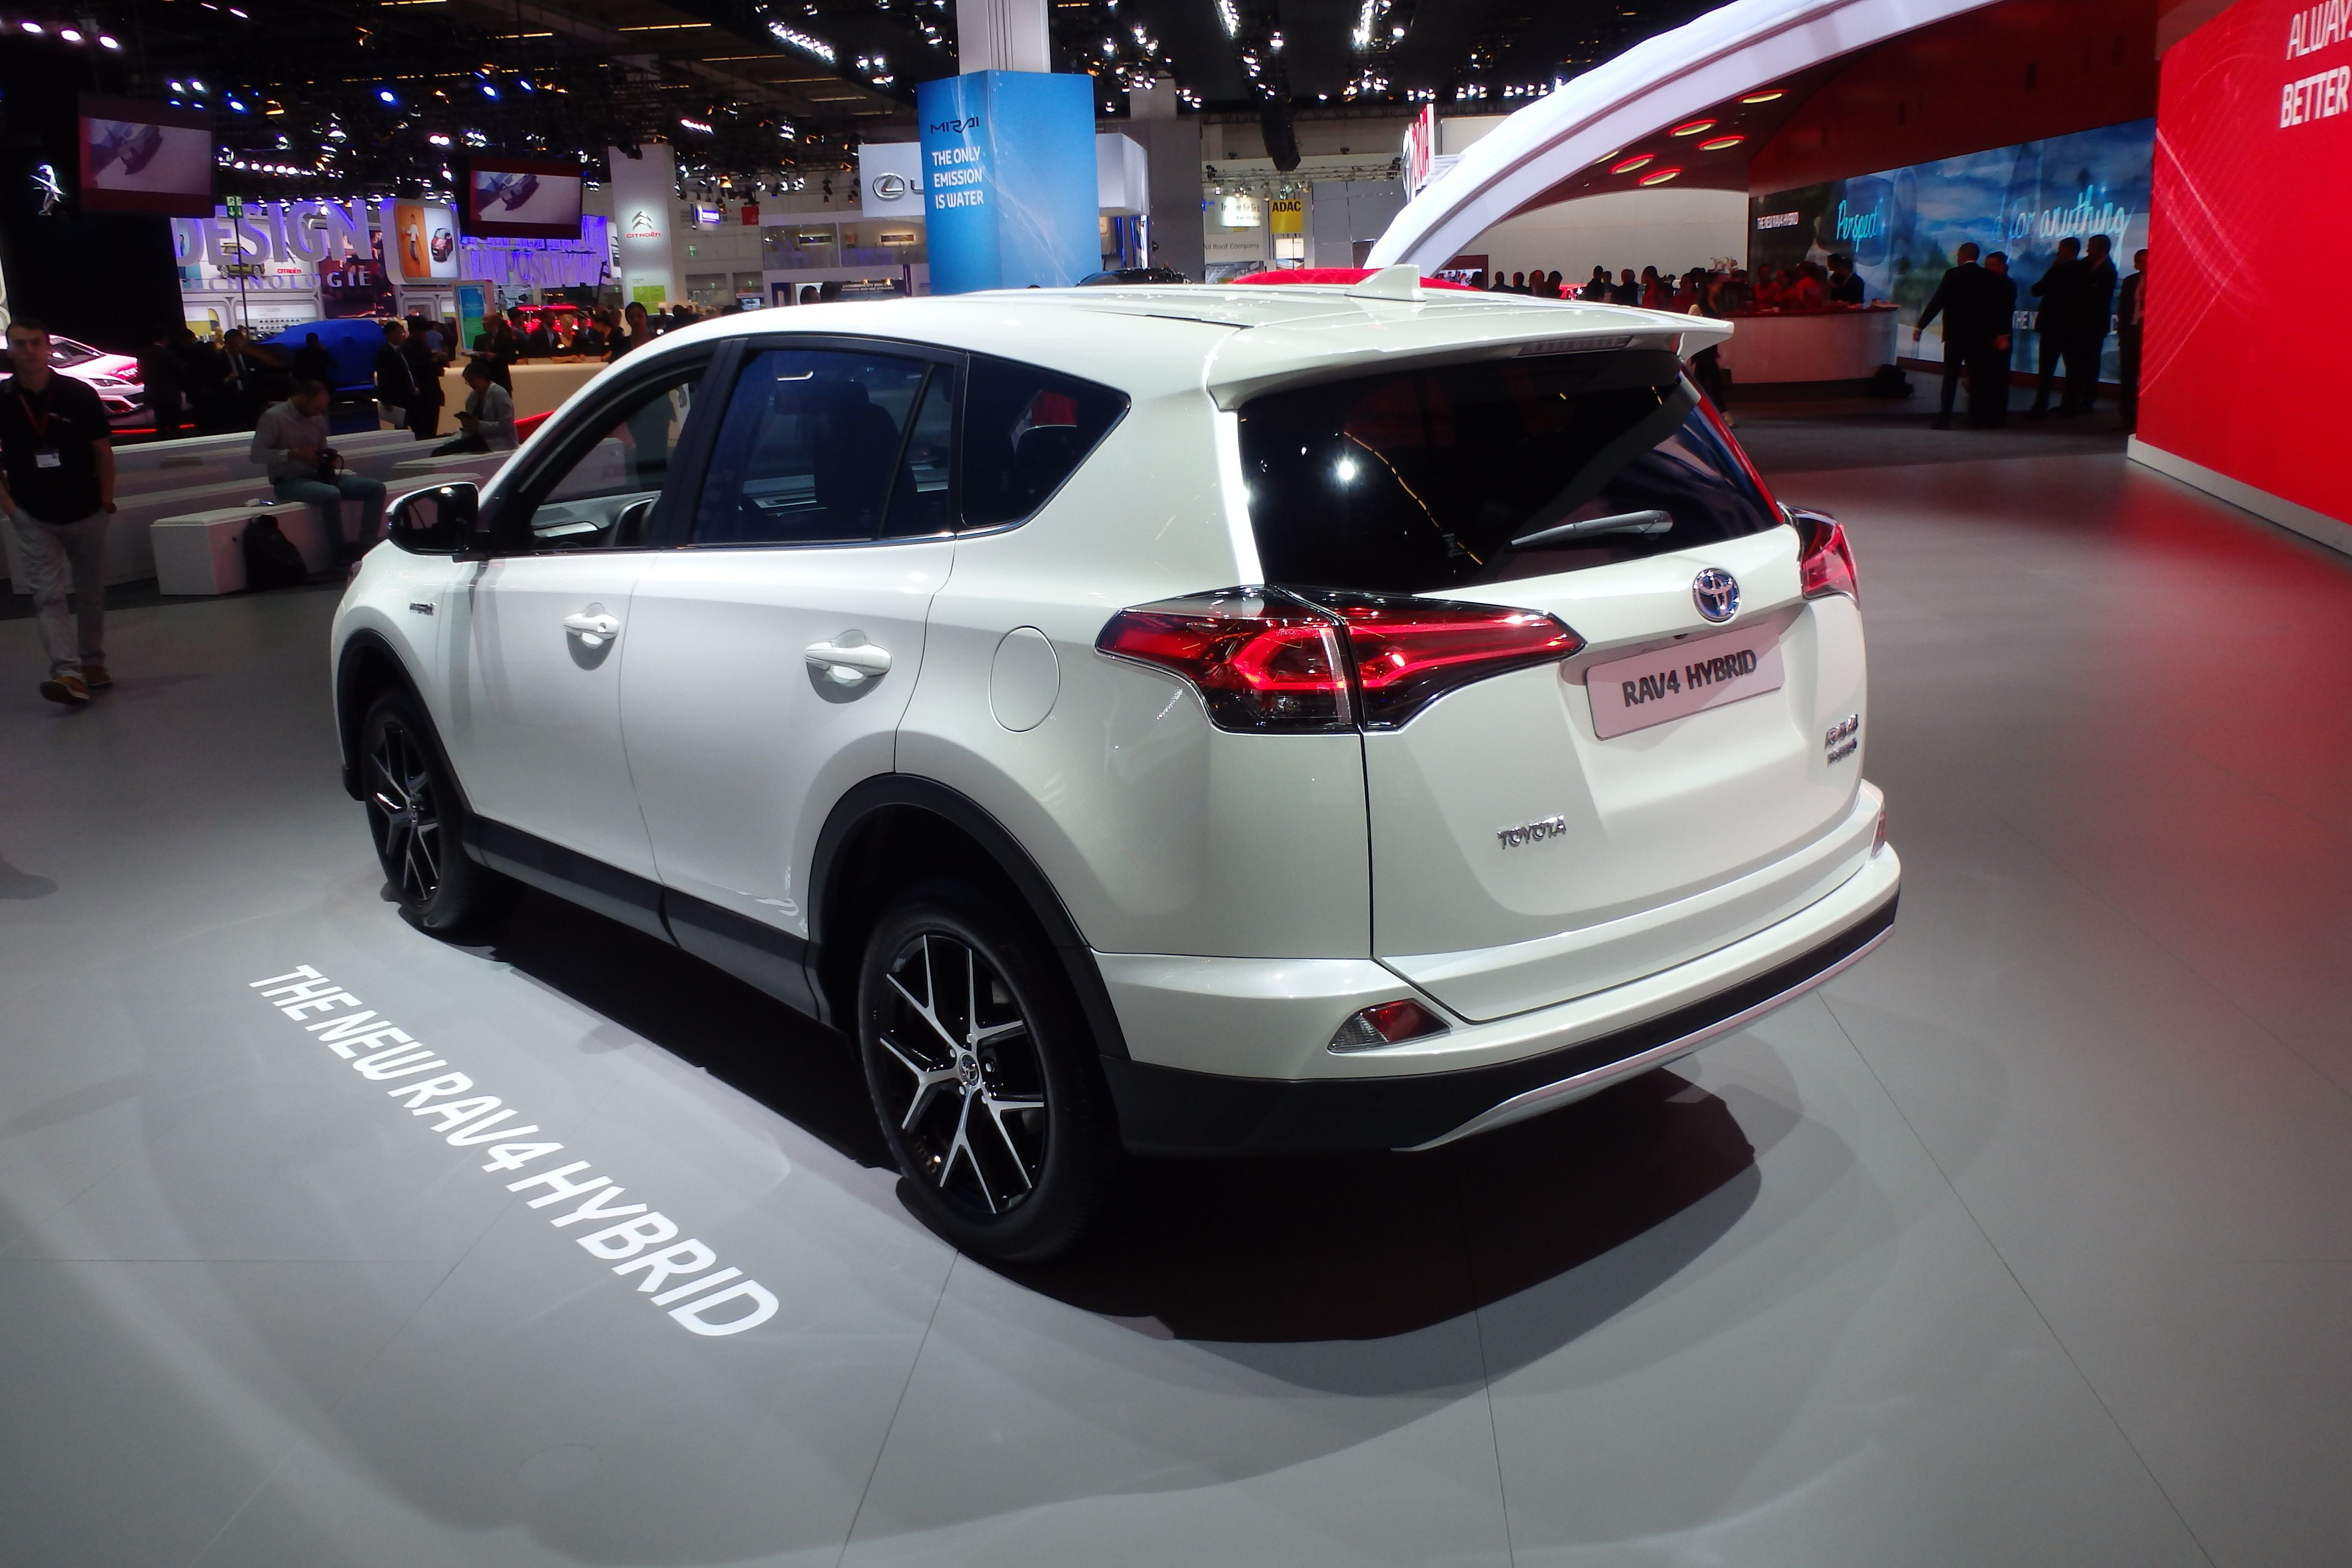 The 2016 Toyota RAV4 is shown at the Frankfurt motor show adding